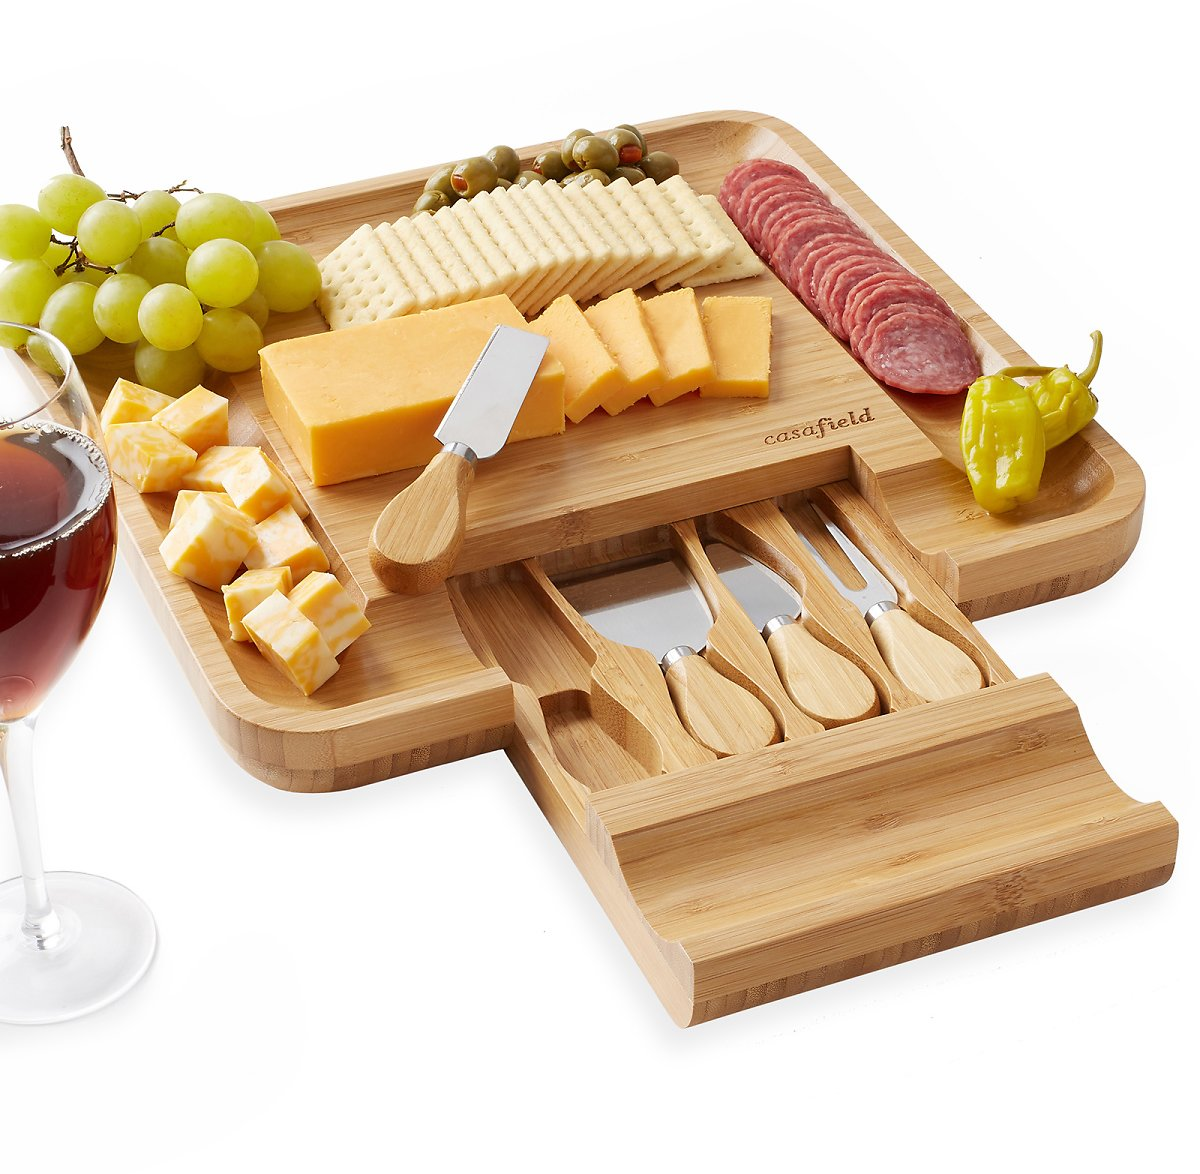 Casafield Casafield Organic Bamboo Cheese Cutting Board & Knife Gift Set